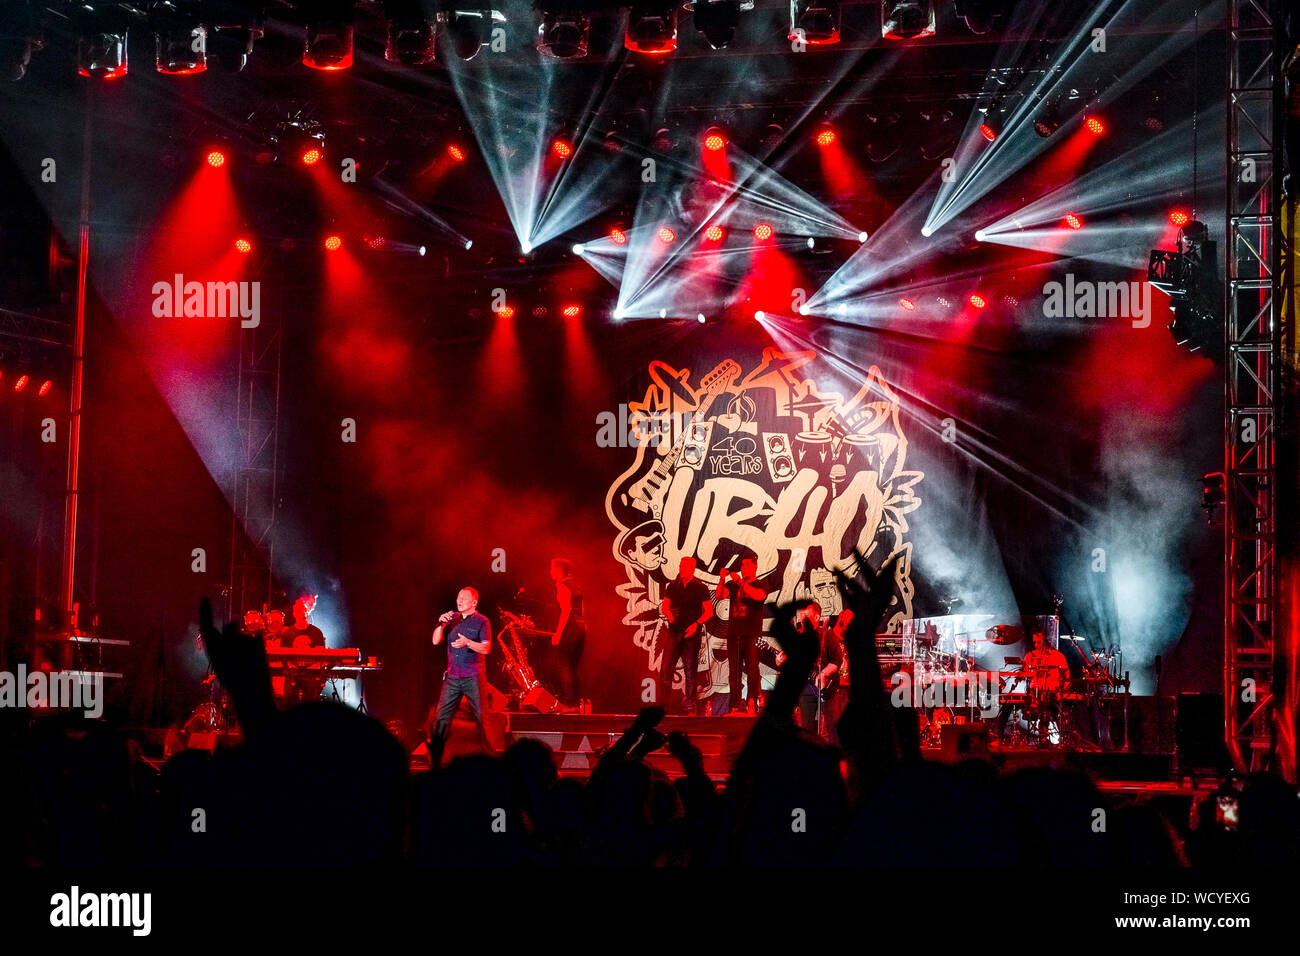 Ub40 Band Stock Photos & Ub40 Band Stock Images - Alamy